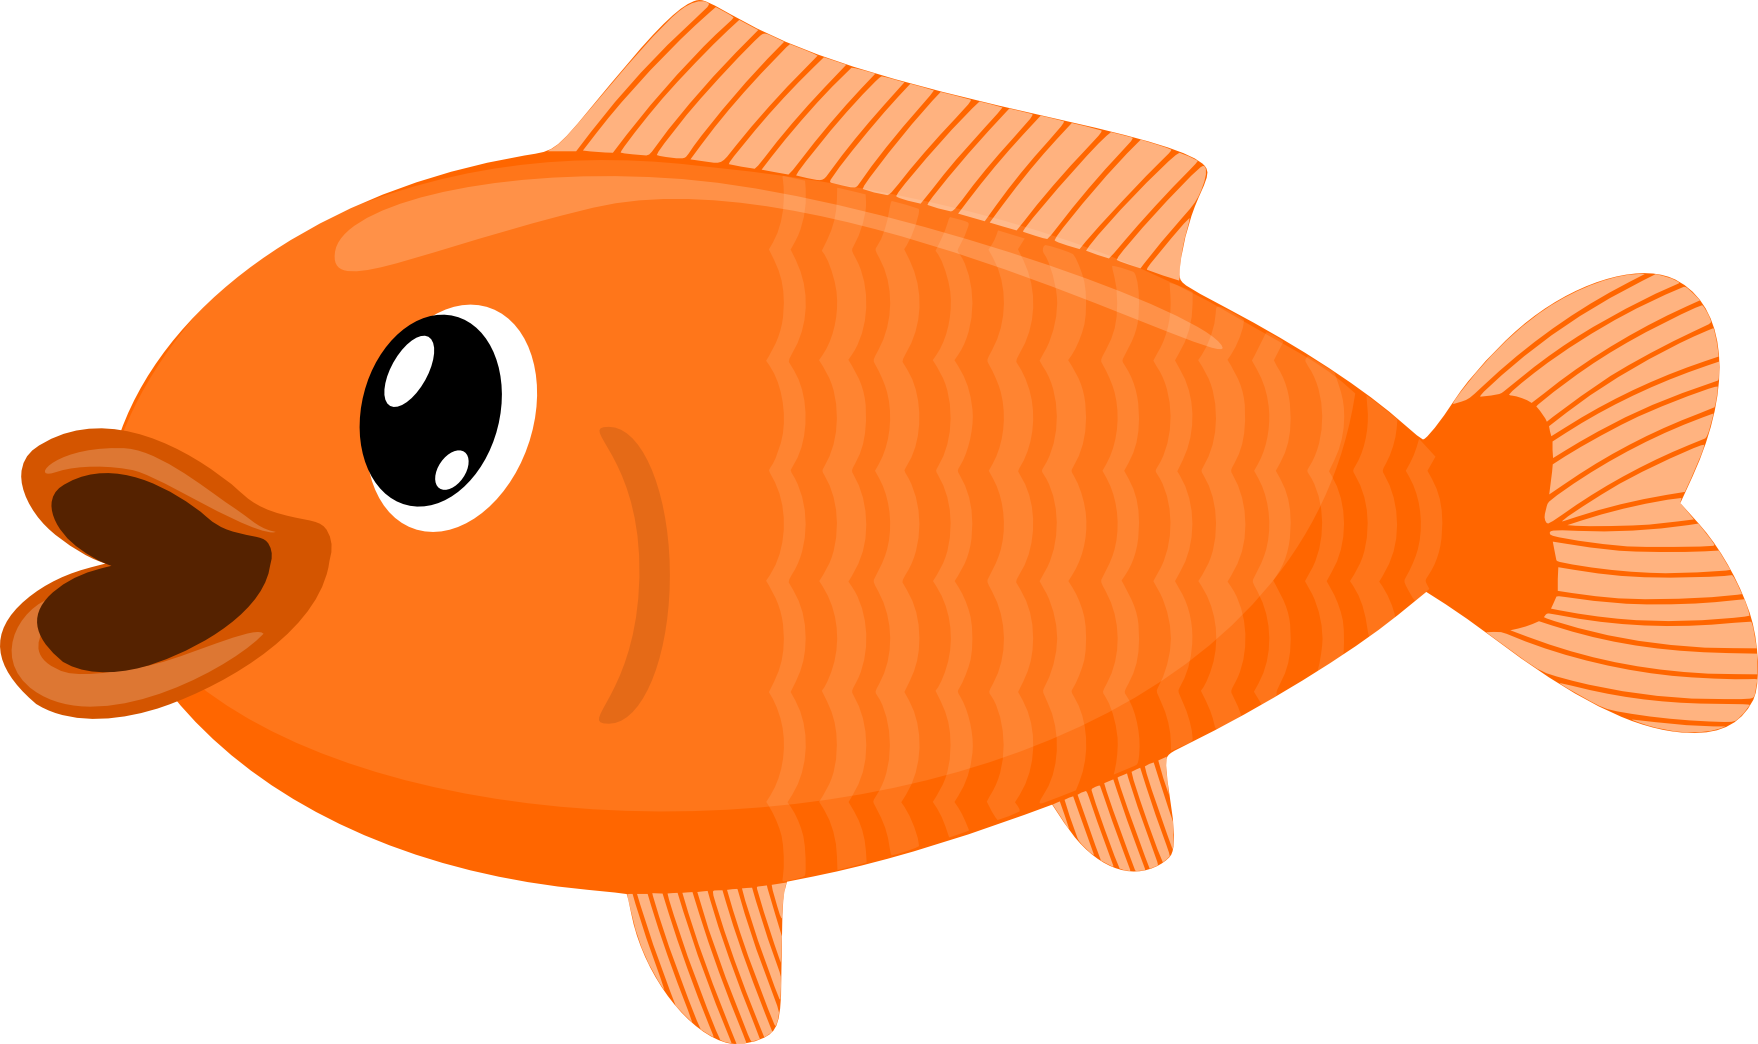 Transparent fish image clipart svg black and white download Koi Fish Clipart at GetDrawings.com | Free for personal use Koi Fish ... svg black and white download